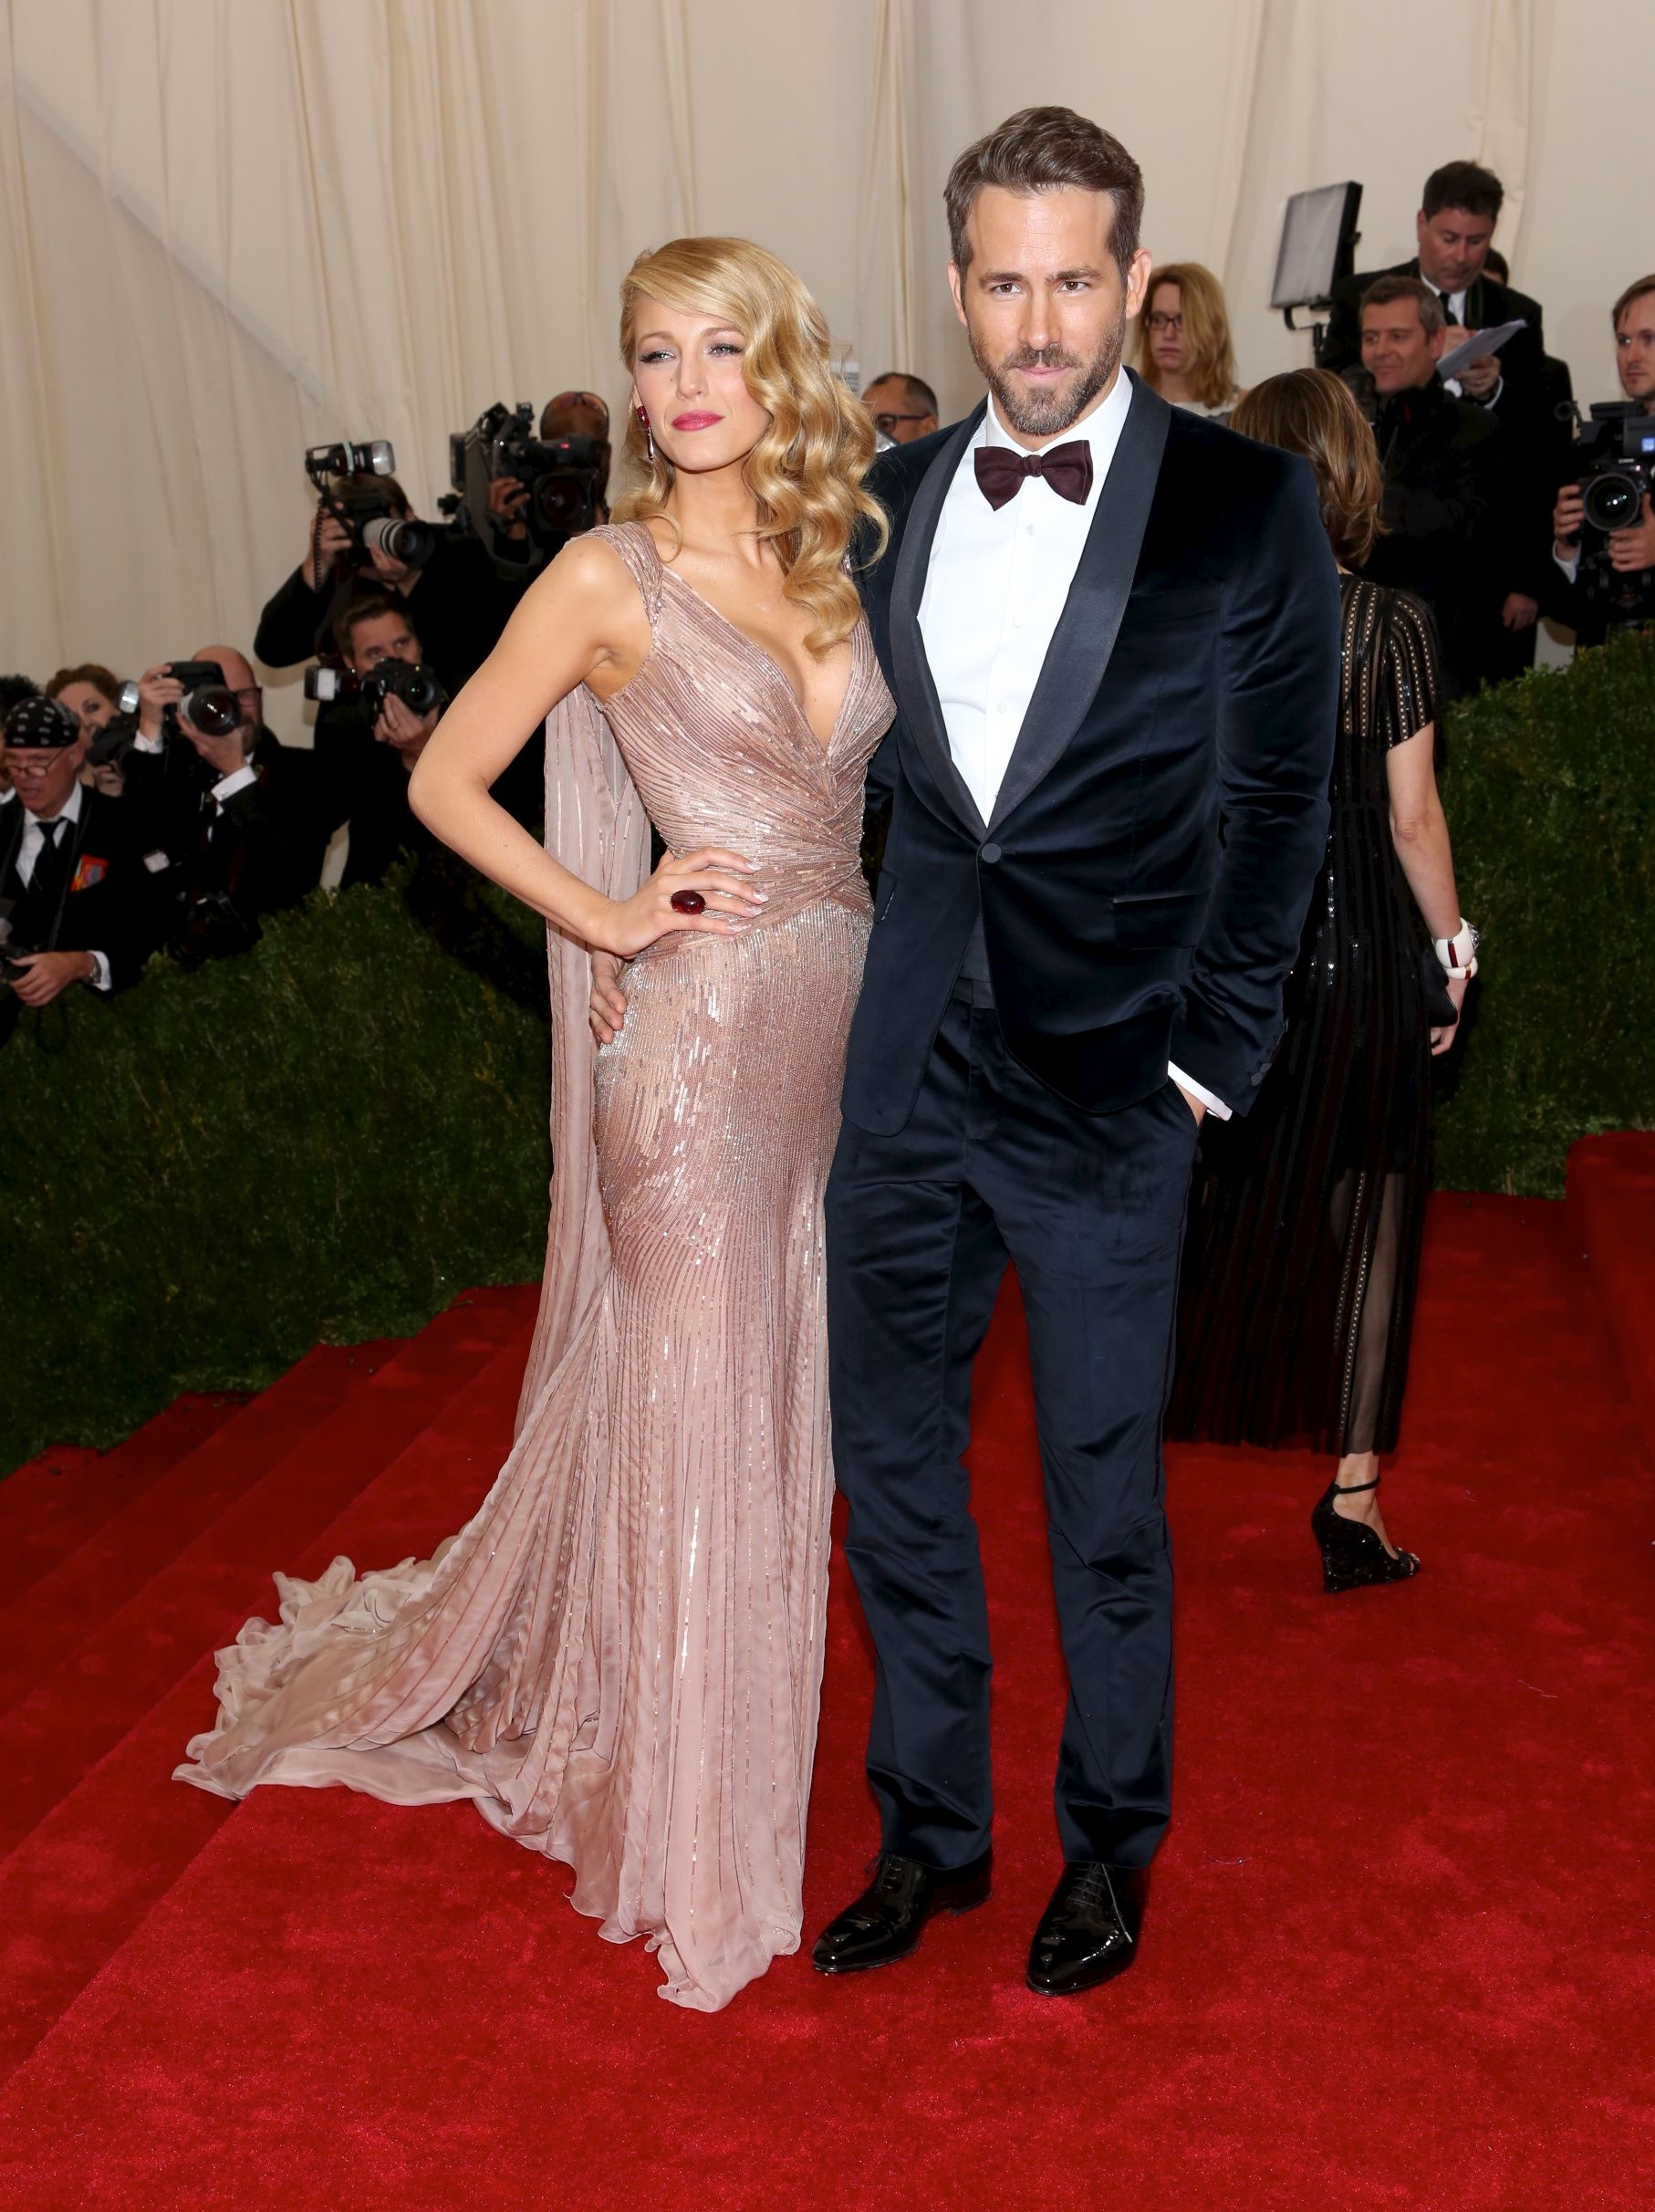 A Complete Guide To Black Tie Formal Wear: What It Means, What ...